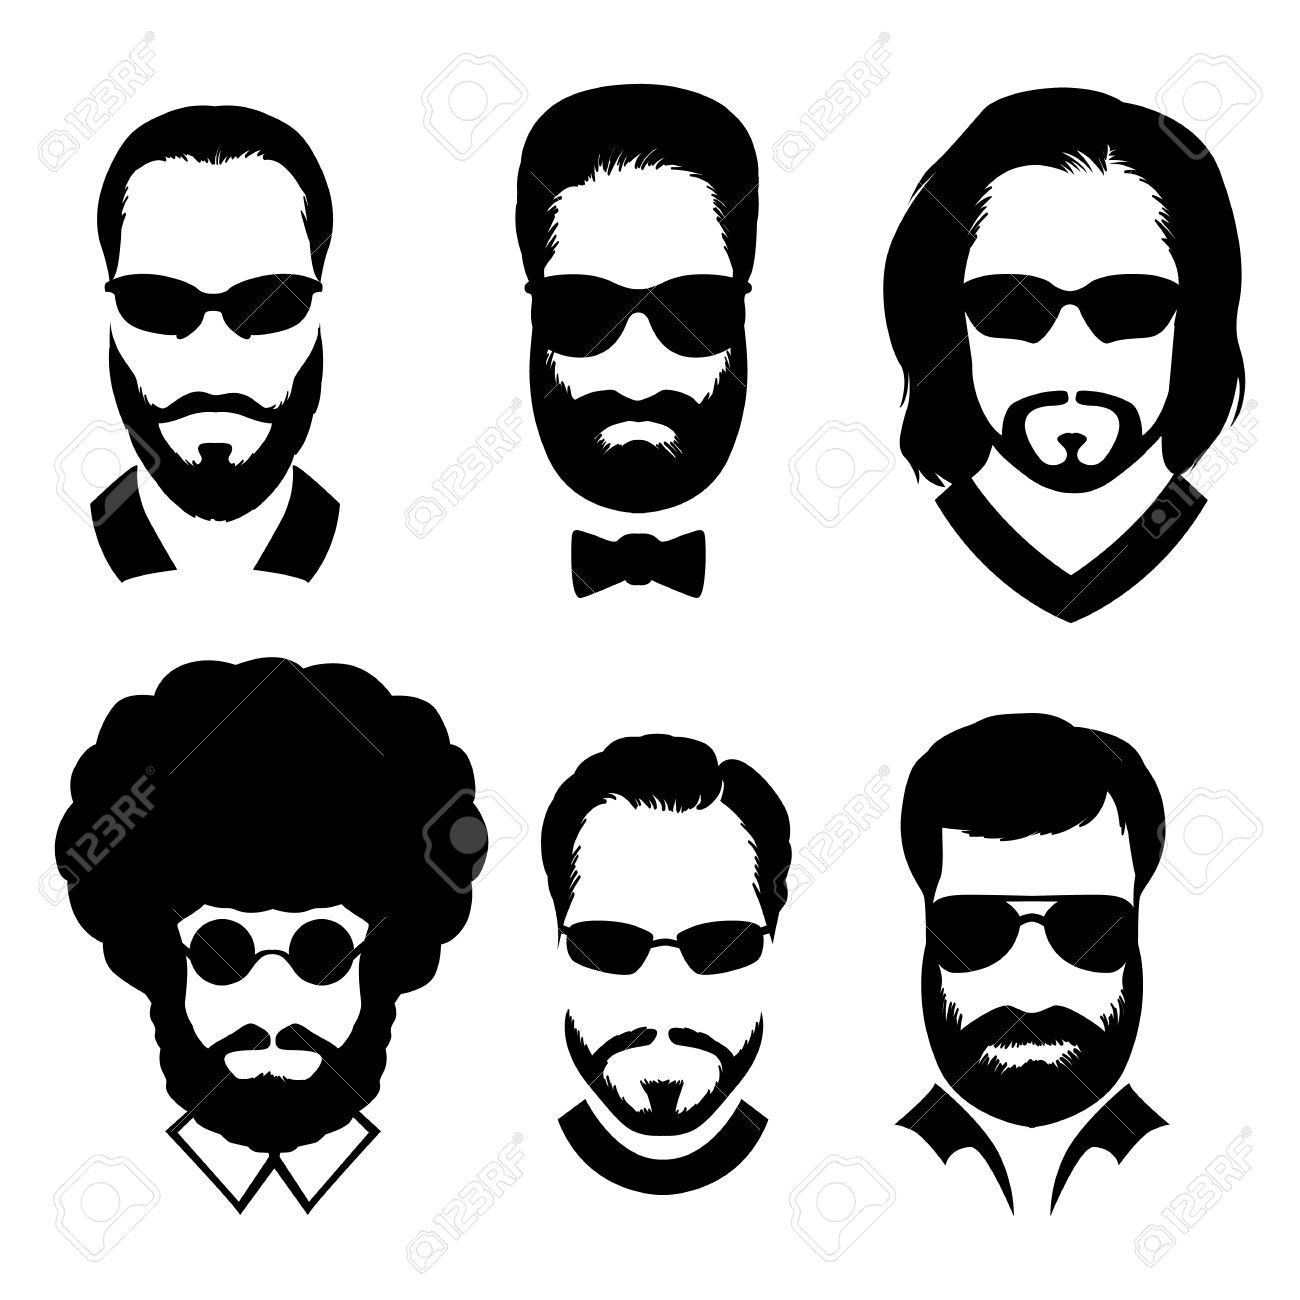 Clipart bearded man clip art download Image result for man with beard clipart | Wedding albums design in ... clip art download